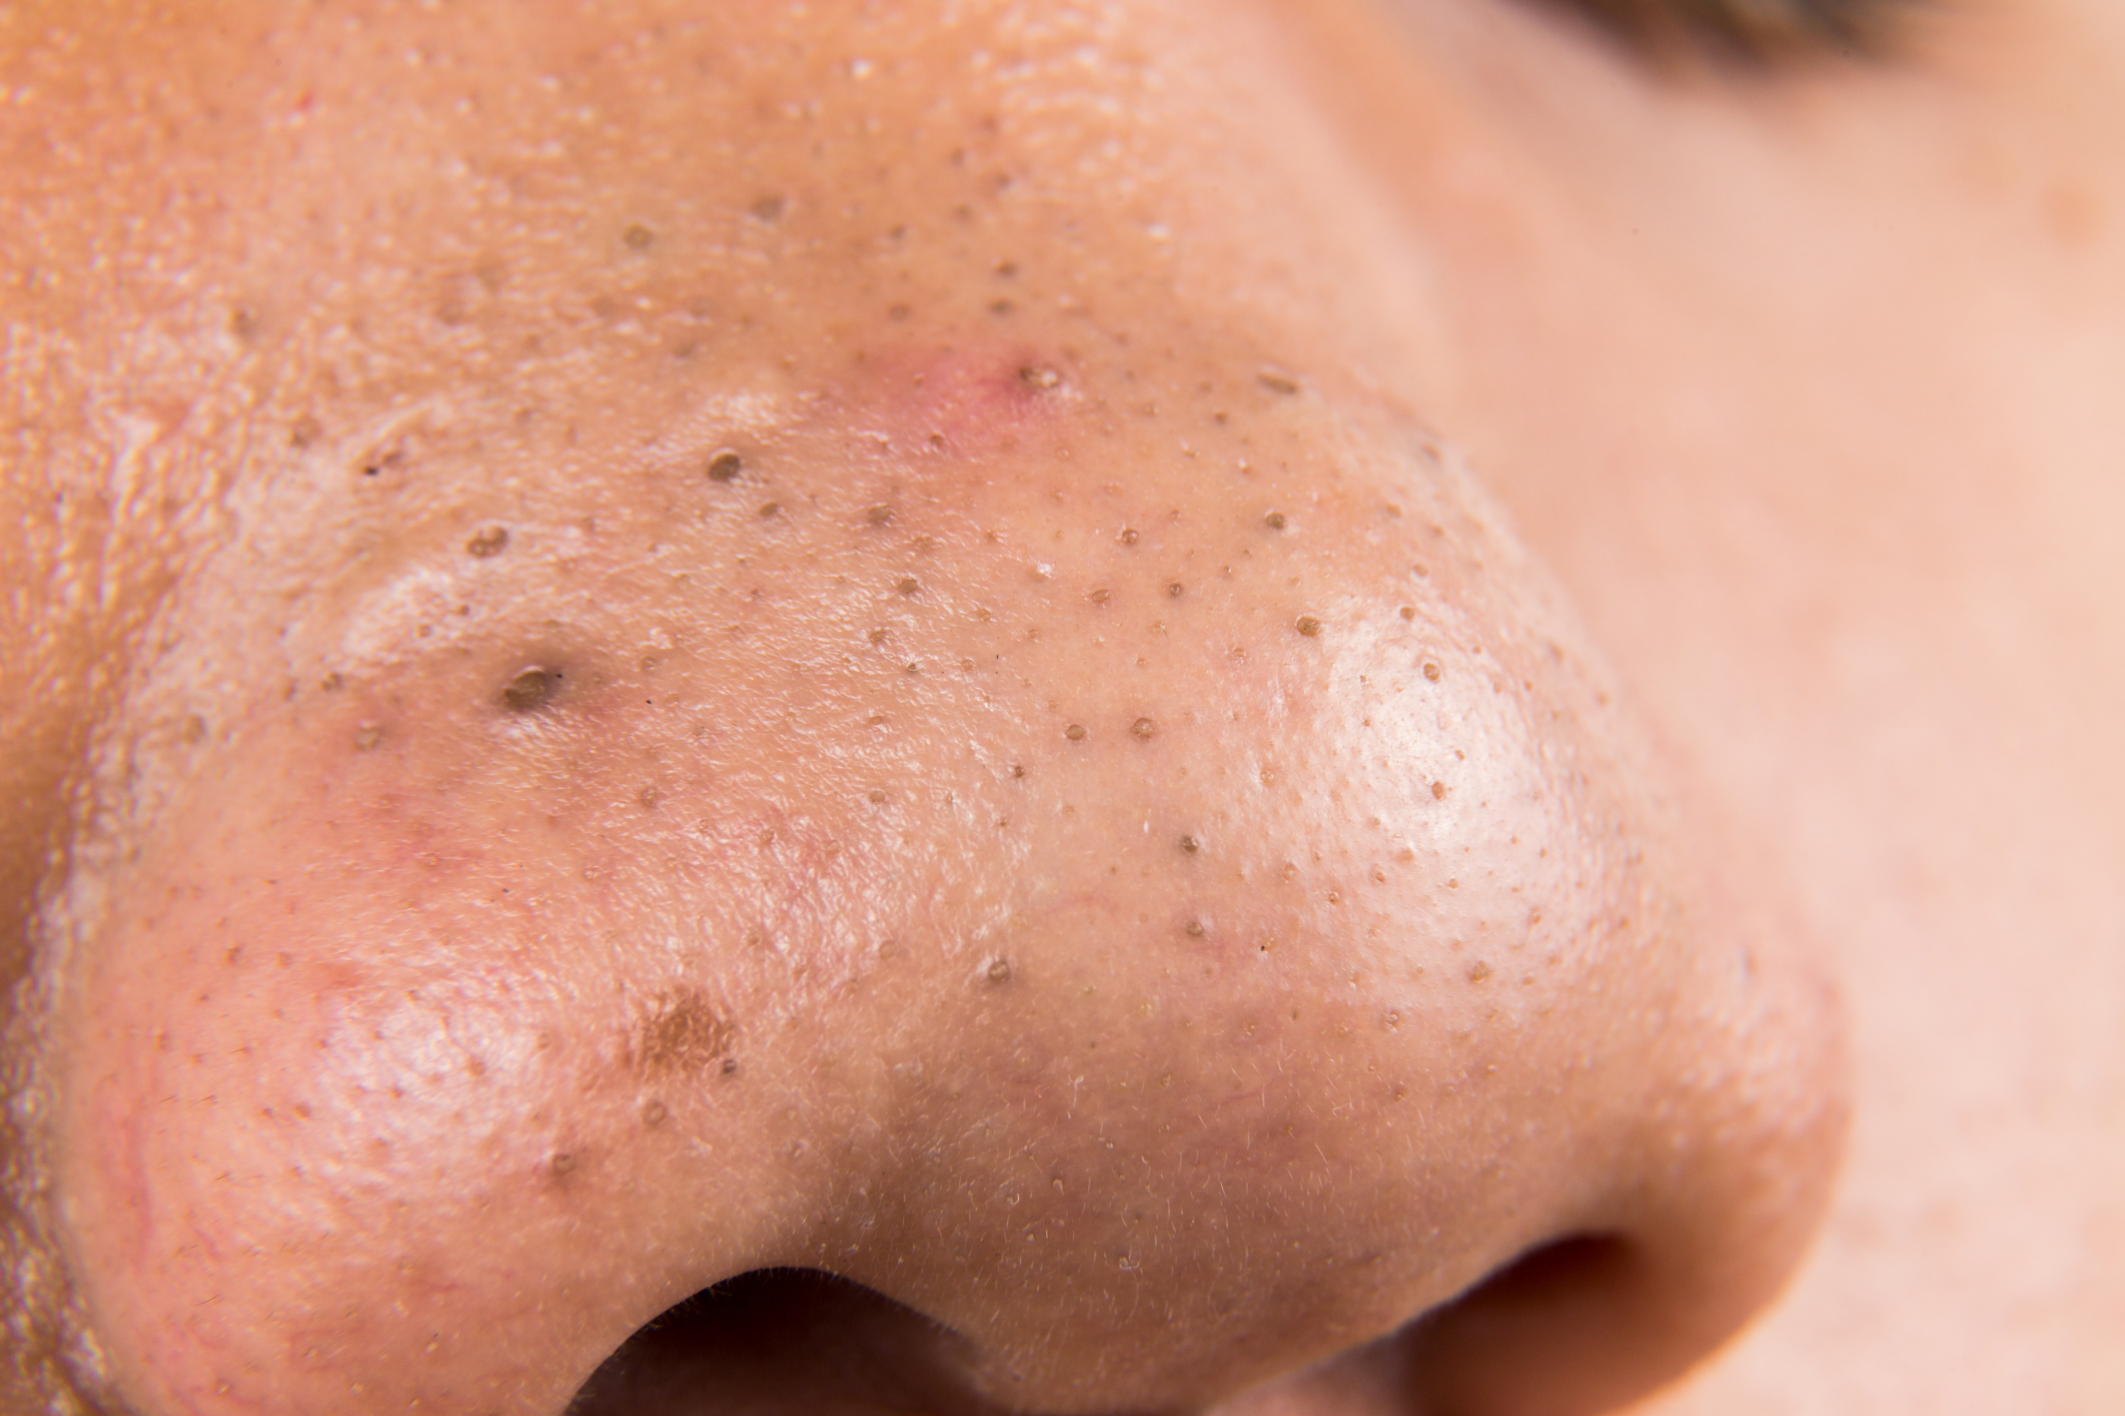 How to Remove Blackheads at Home